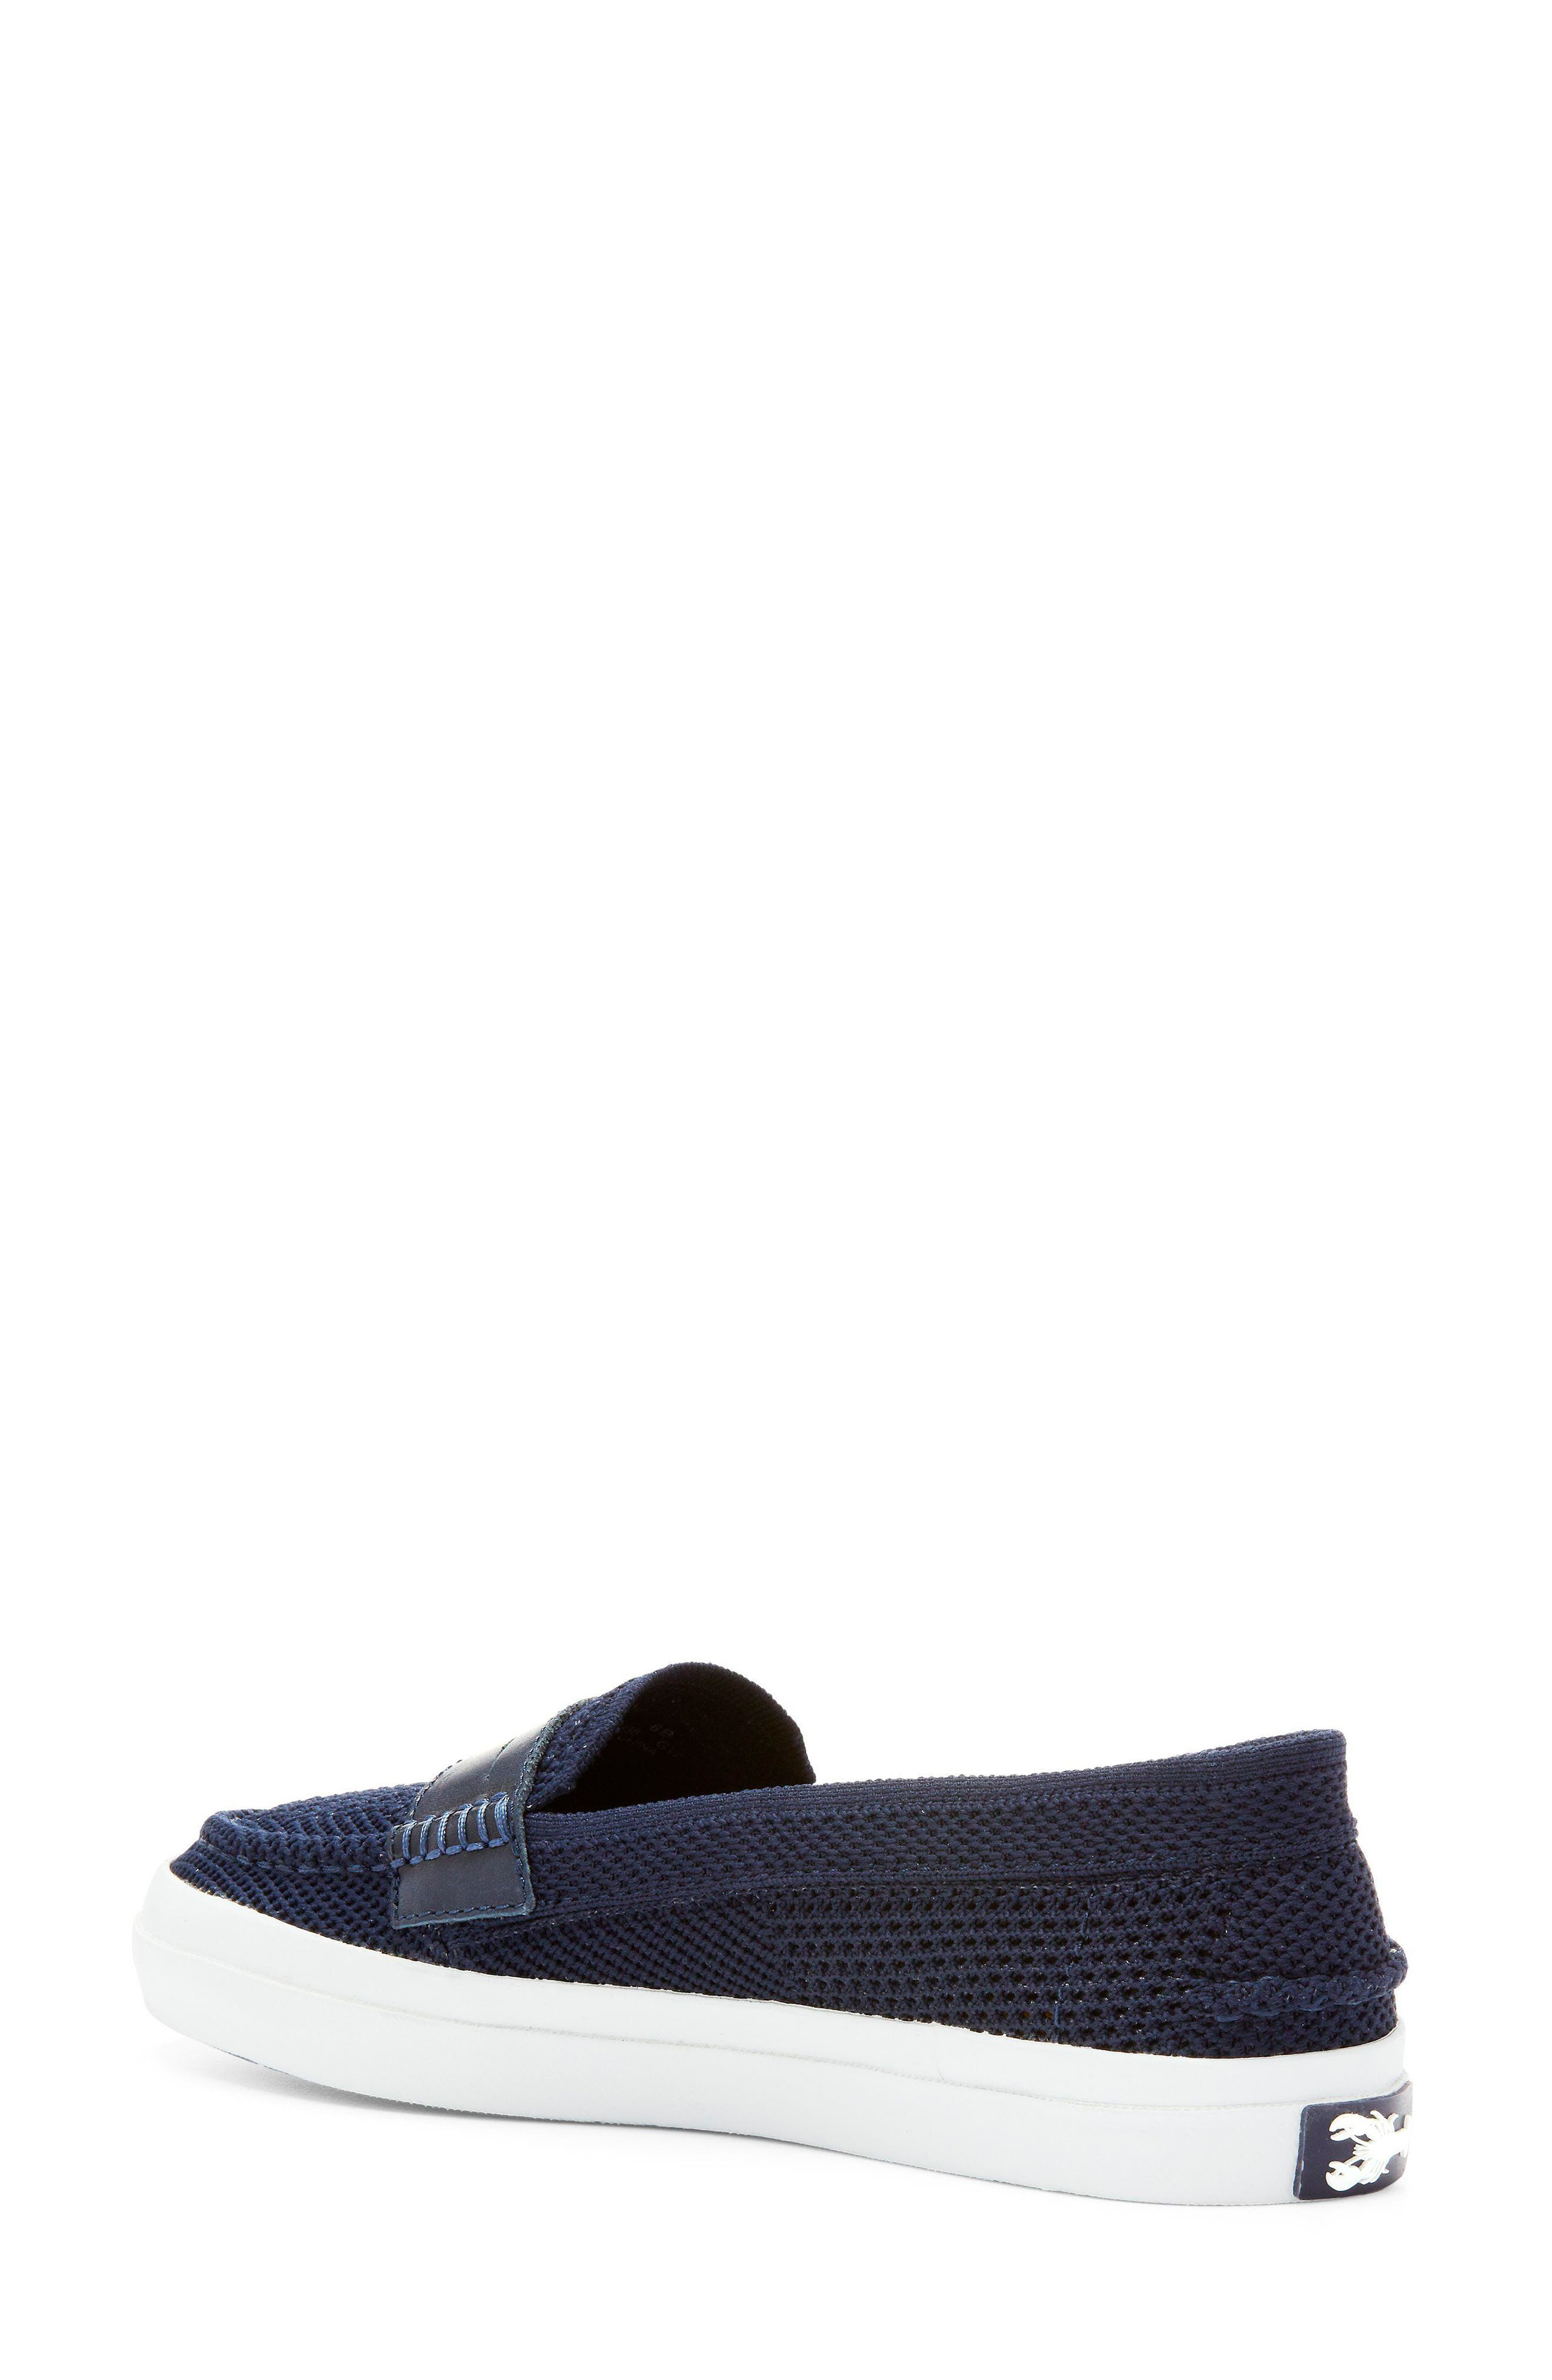 Pinch Stitchlite<sup>™</sup> Loafer,                             Alternate thumbnail 2, color,                             410